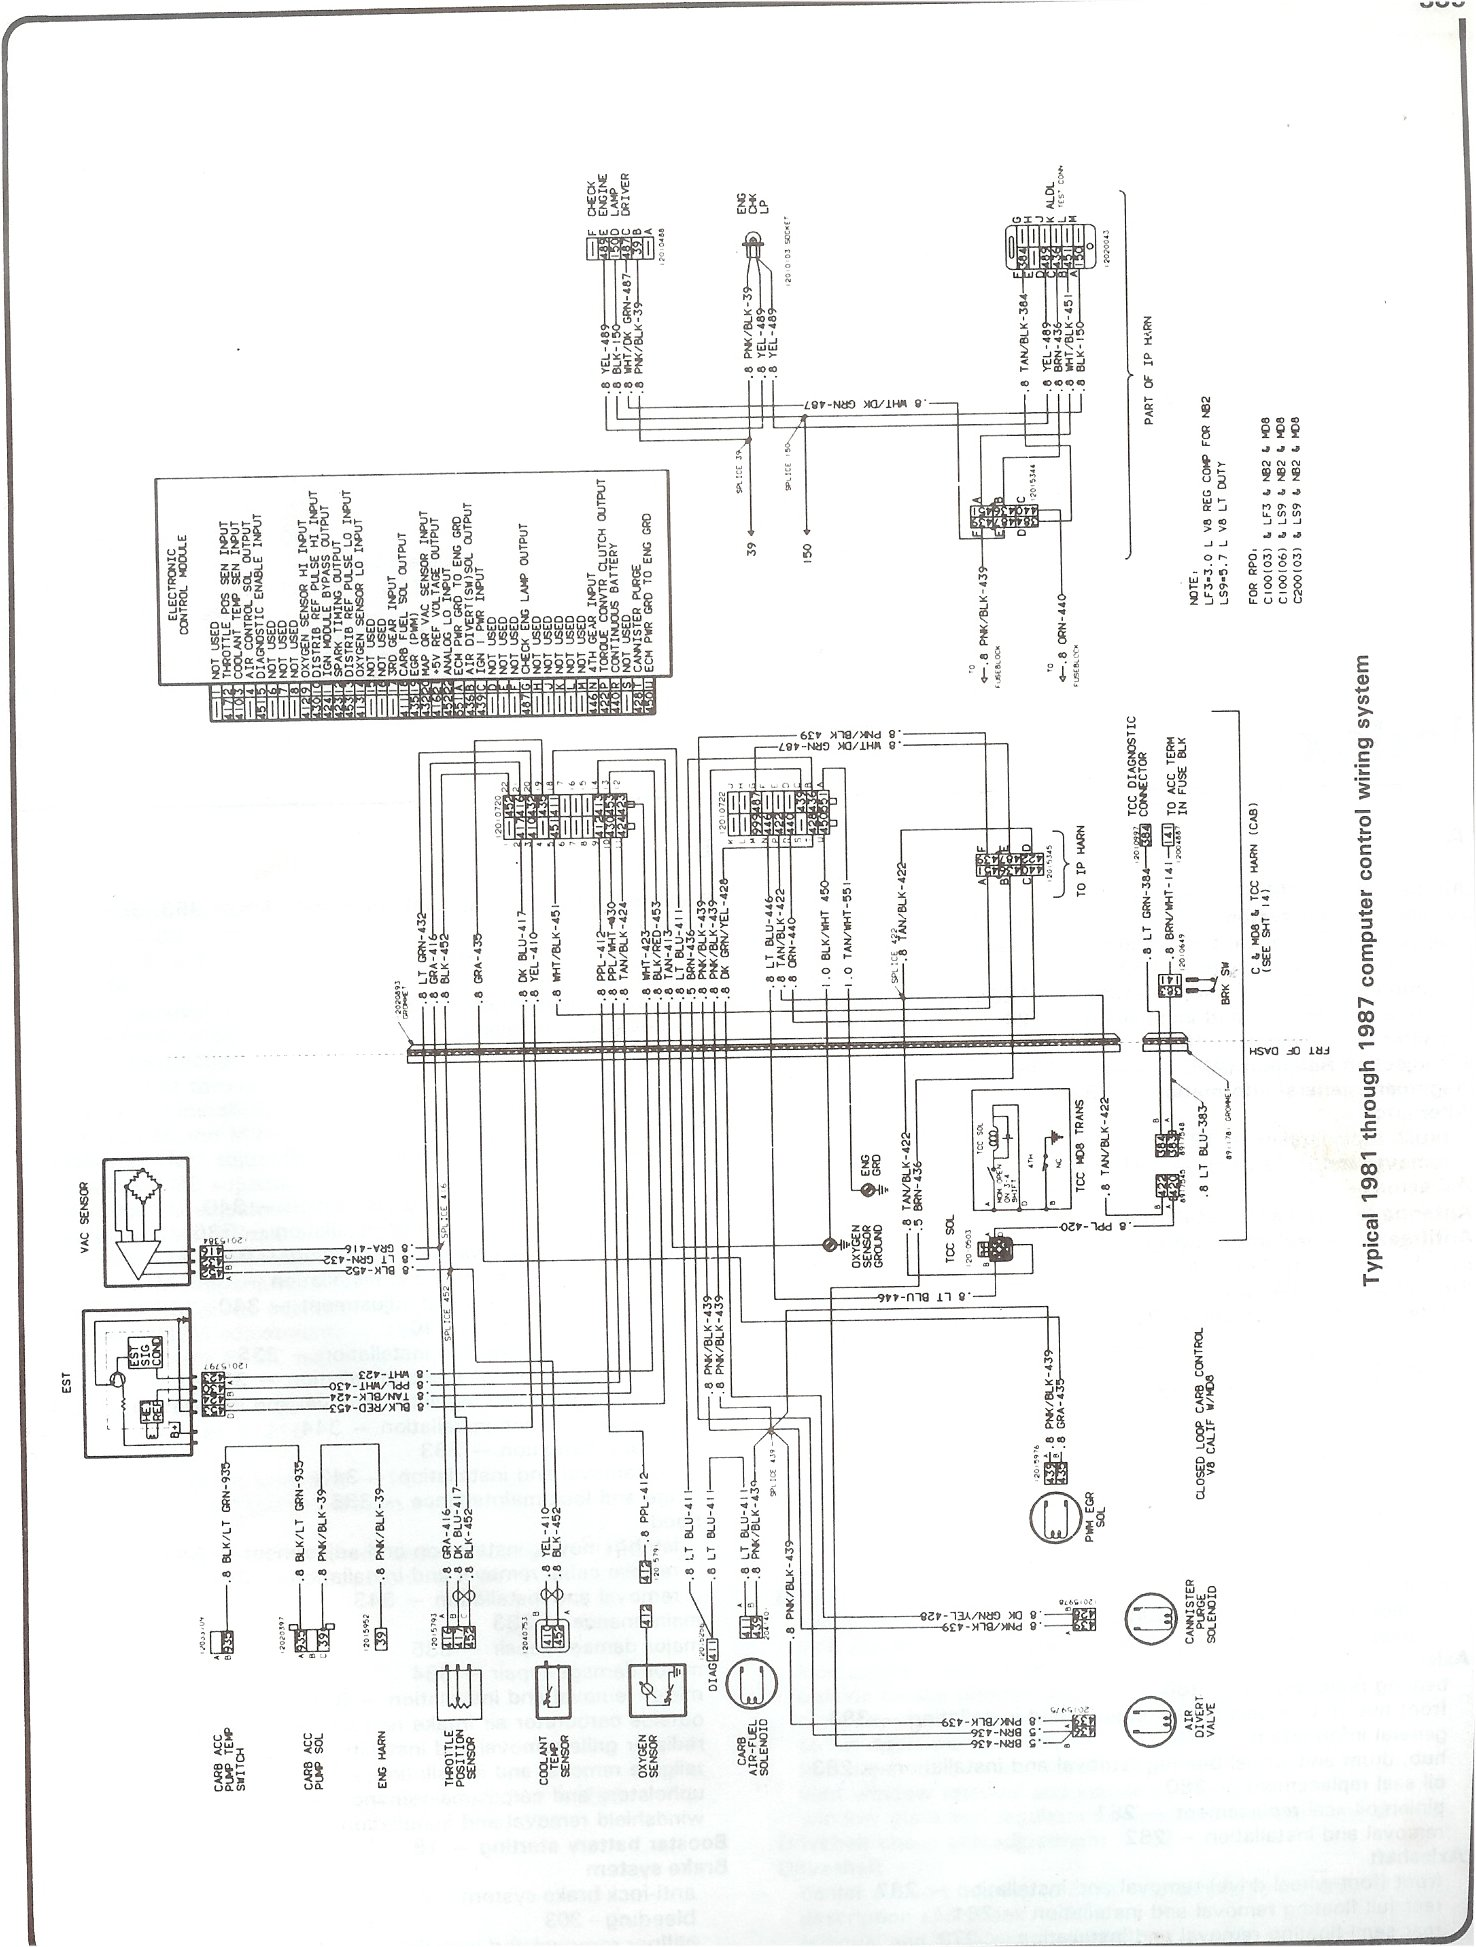 hight resolution of 1976 chevy 350 wiring diagram simple wiring diagrams 1 wire alternator wiring diagram for 1970 chevy truck 1975 chevy 350 wiring diagram